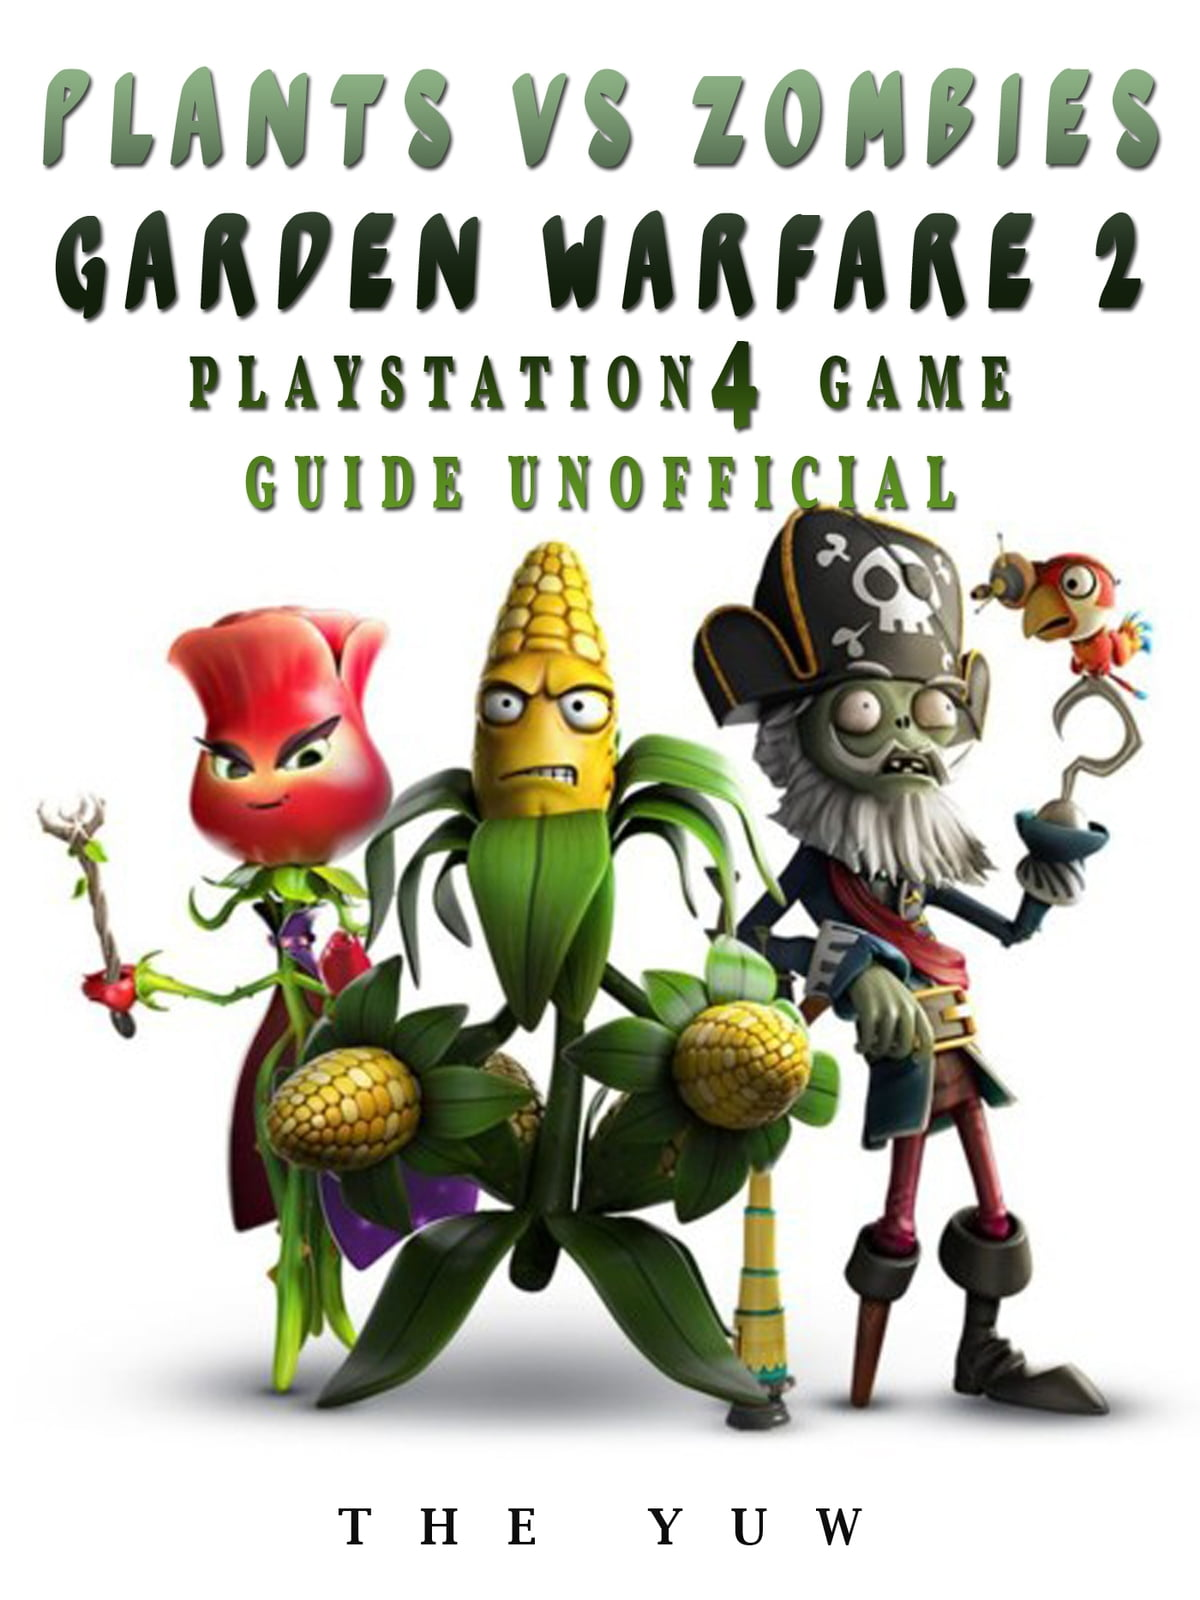 Roblox Versus Zombies Plants Vs Zombies Garden Warfare 2 Playstation 4 Game Guide Unofficial Ebook By The Yuw 9781387105052 Rakuten Kobo United States